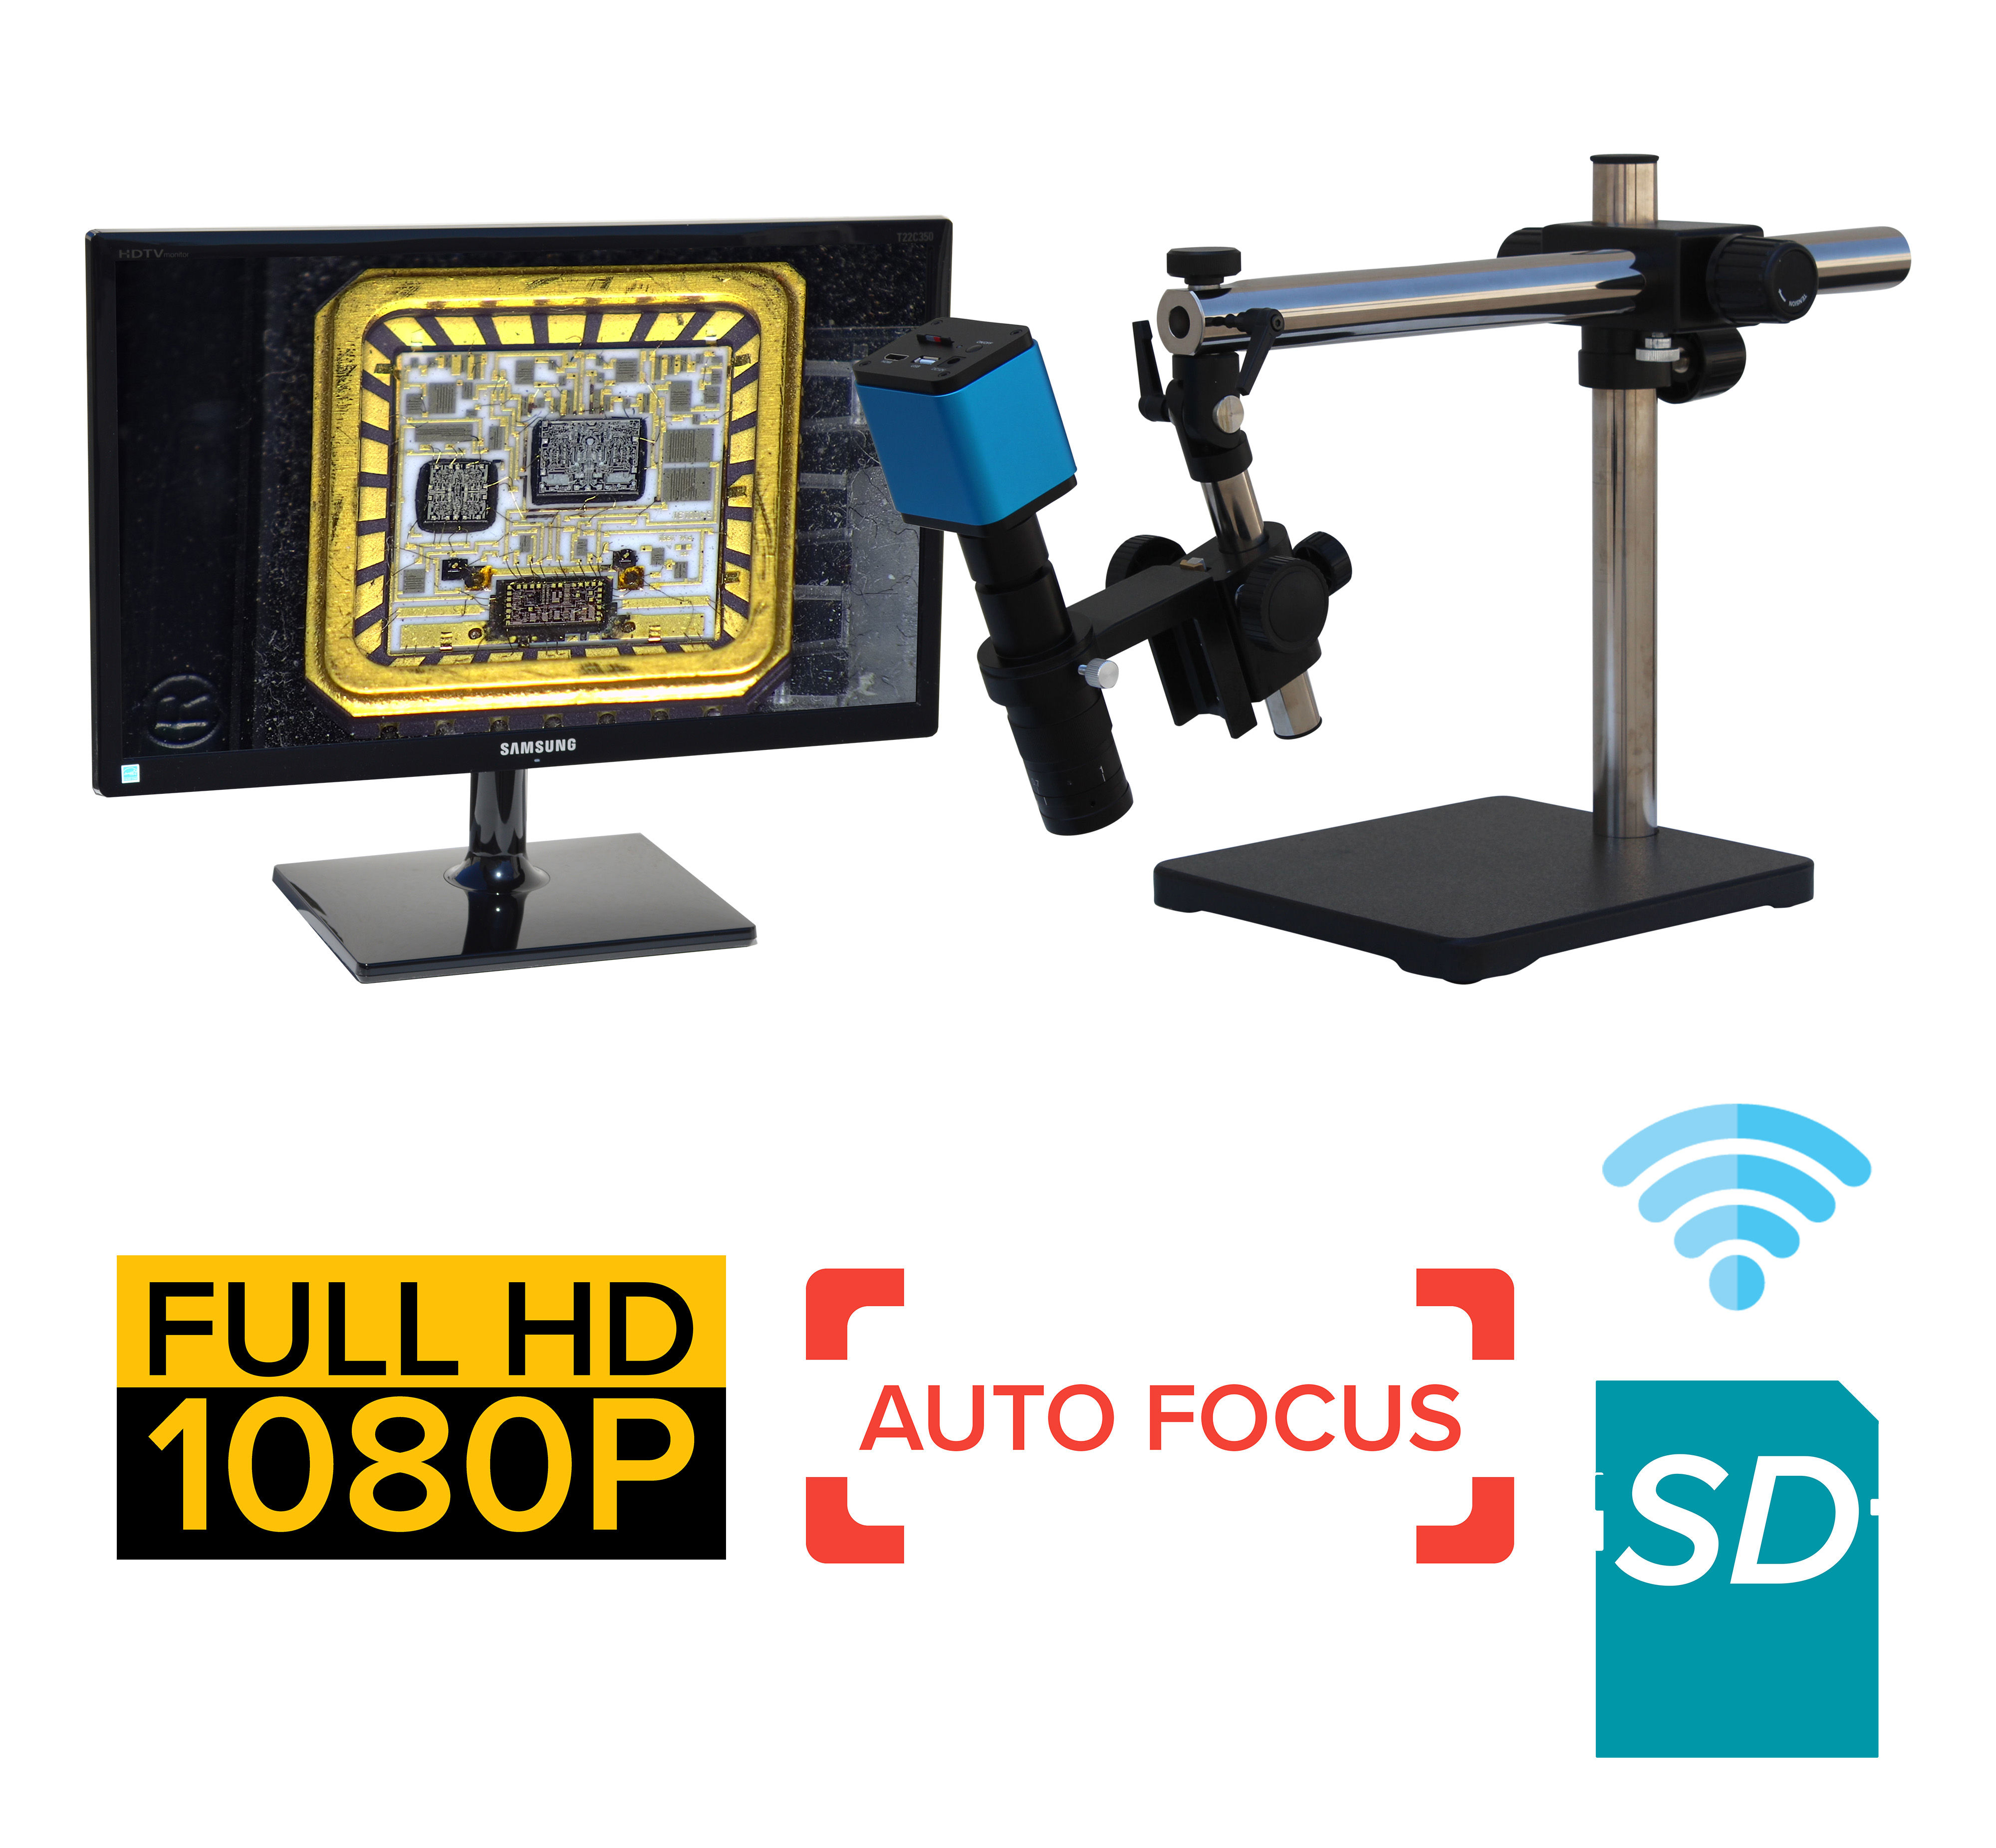 eHDAF205 series standard 24x-160x or possible 12x-320x Auto Focus + Wi-Fi + HD1080p + SD card [Start at $950]